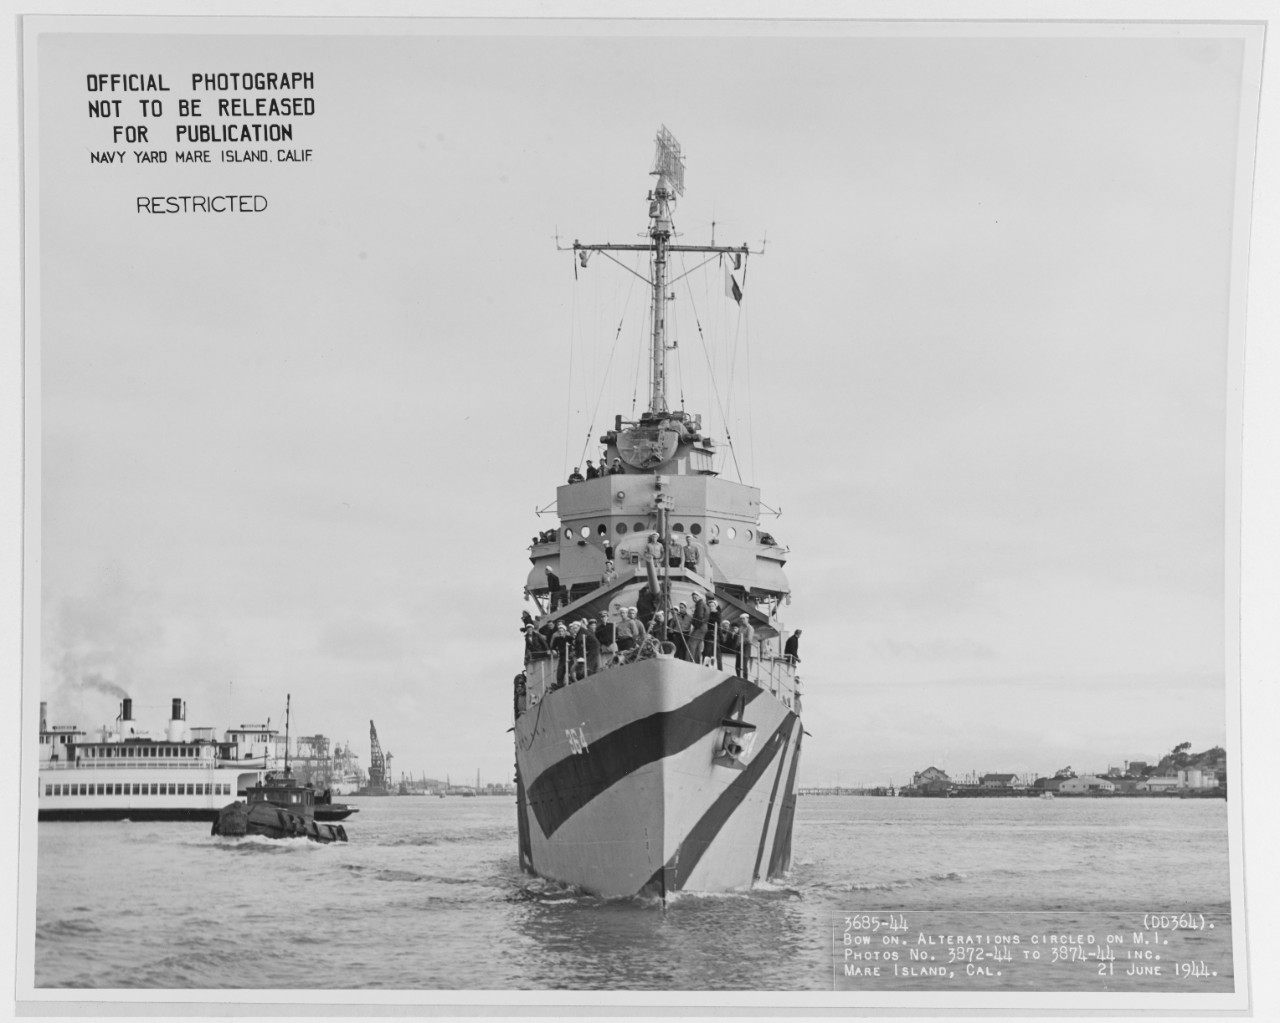 Bow-on view of Mahan, taken at Mare Island Navy Yard on 21 June 1944. Note the camouflage pattern carried around the stern in a continuous pattern. (U.S. Navy Bureau of Ships Photograph 19-N-67750, National Archives and Records Administration, Still Pictures Division, College Park, Md.)